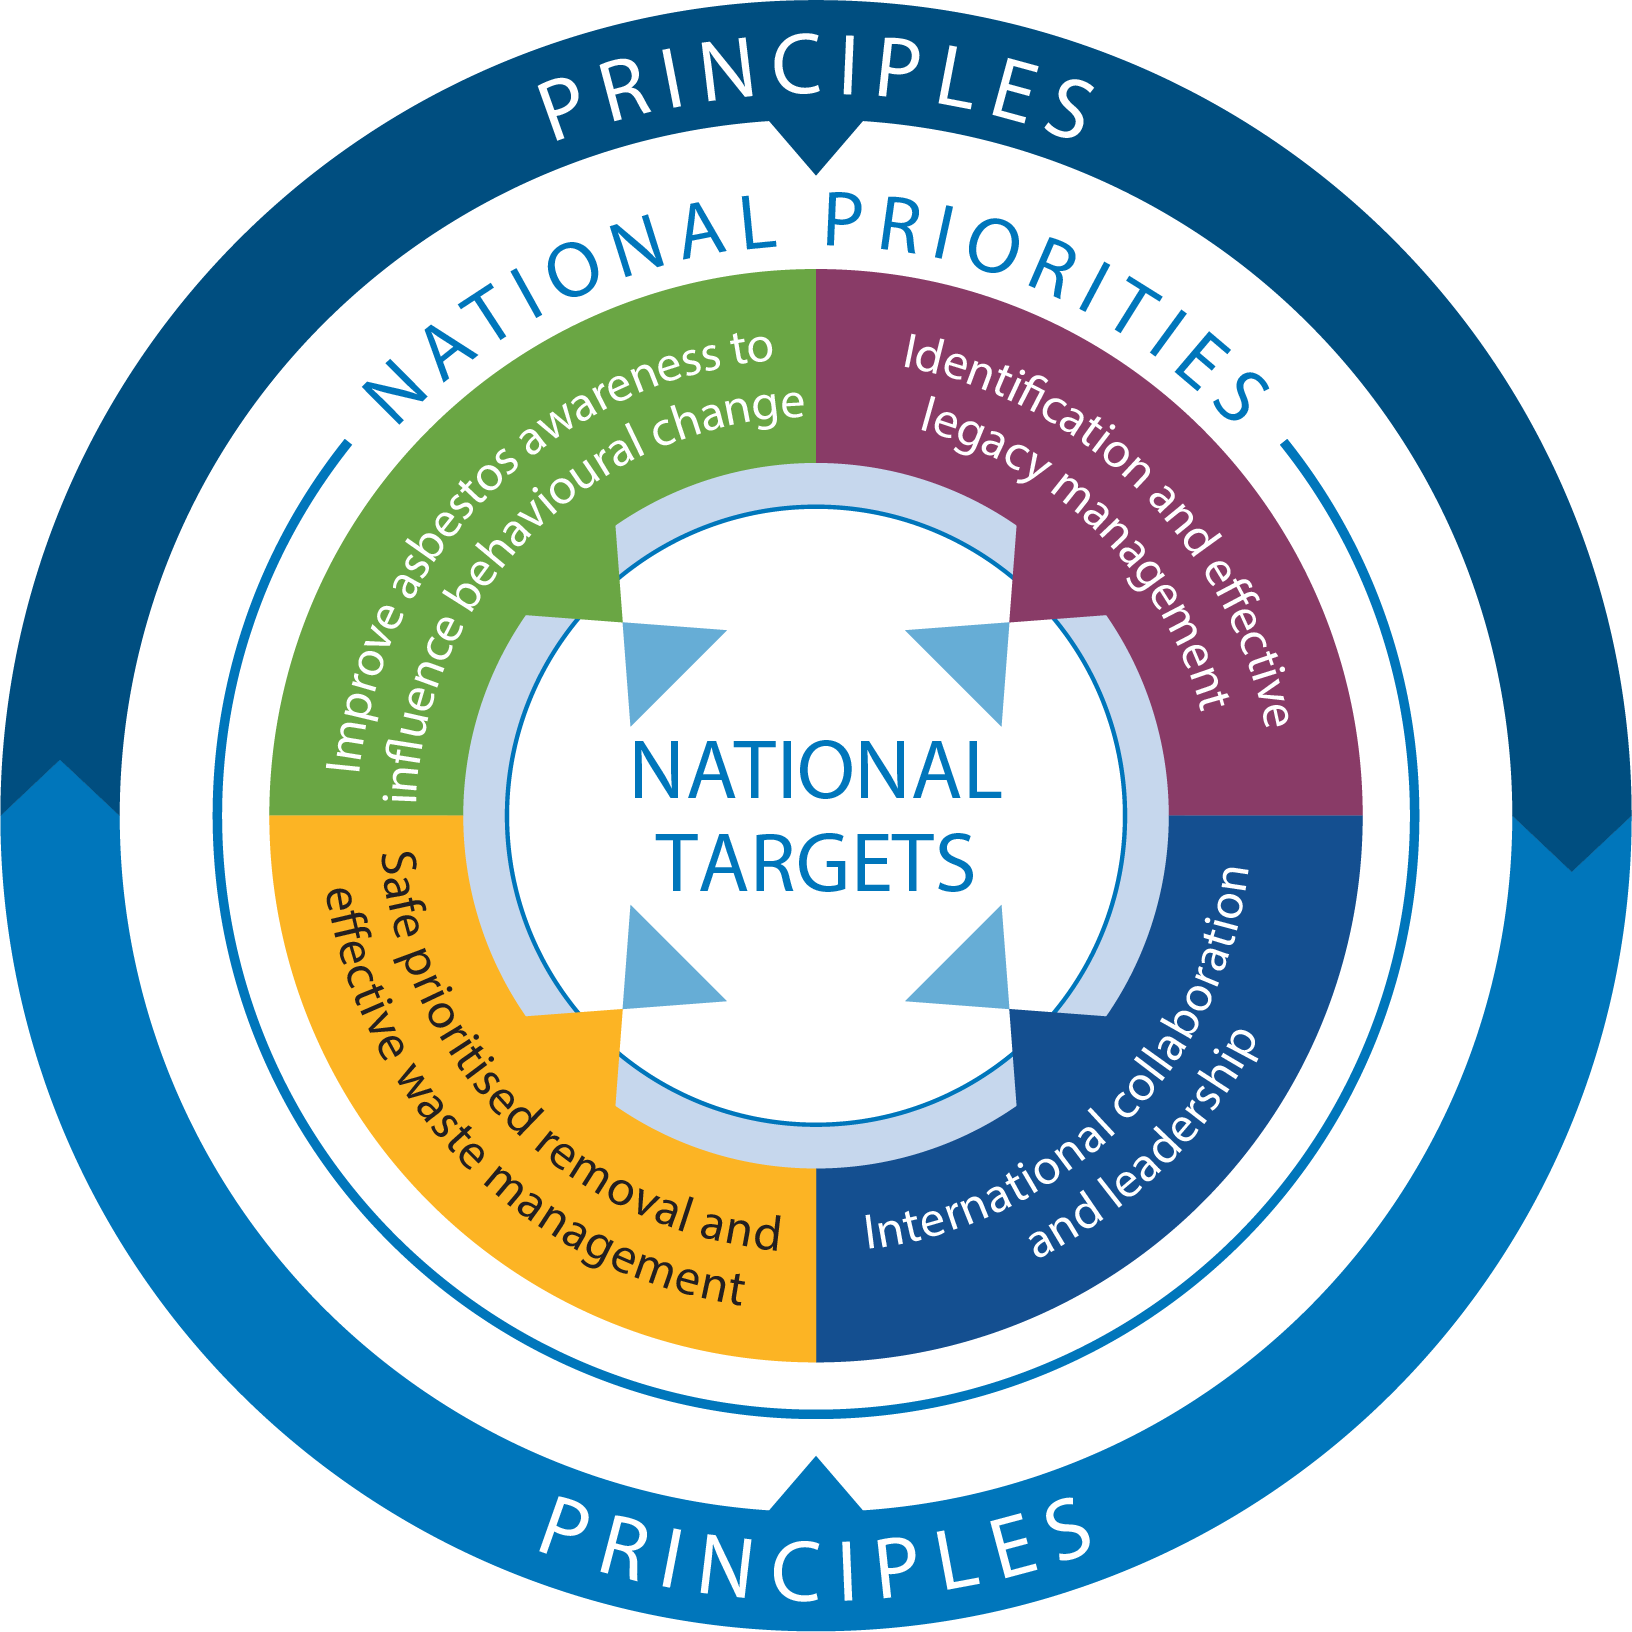 Image showing the four national priorities of the national strategic plan